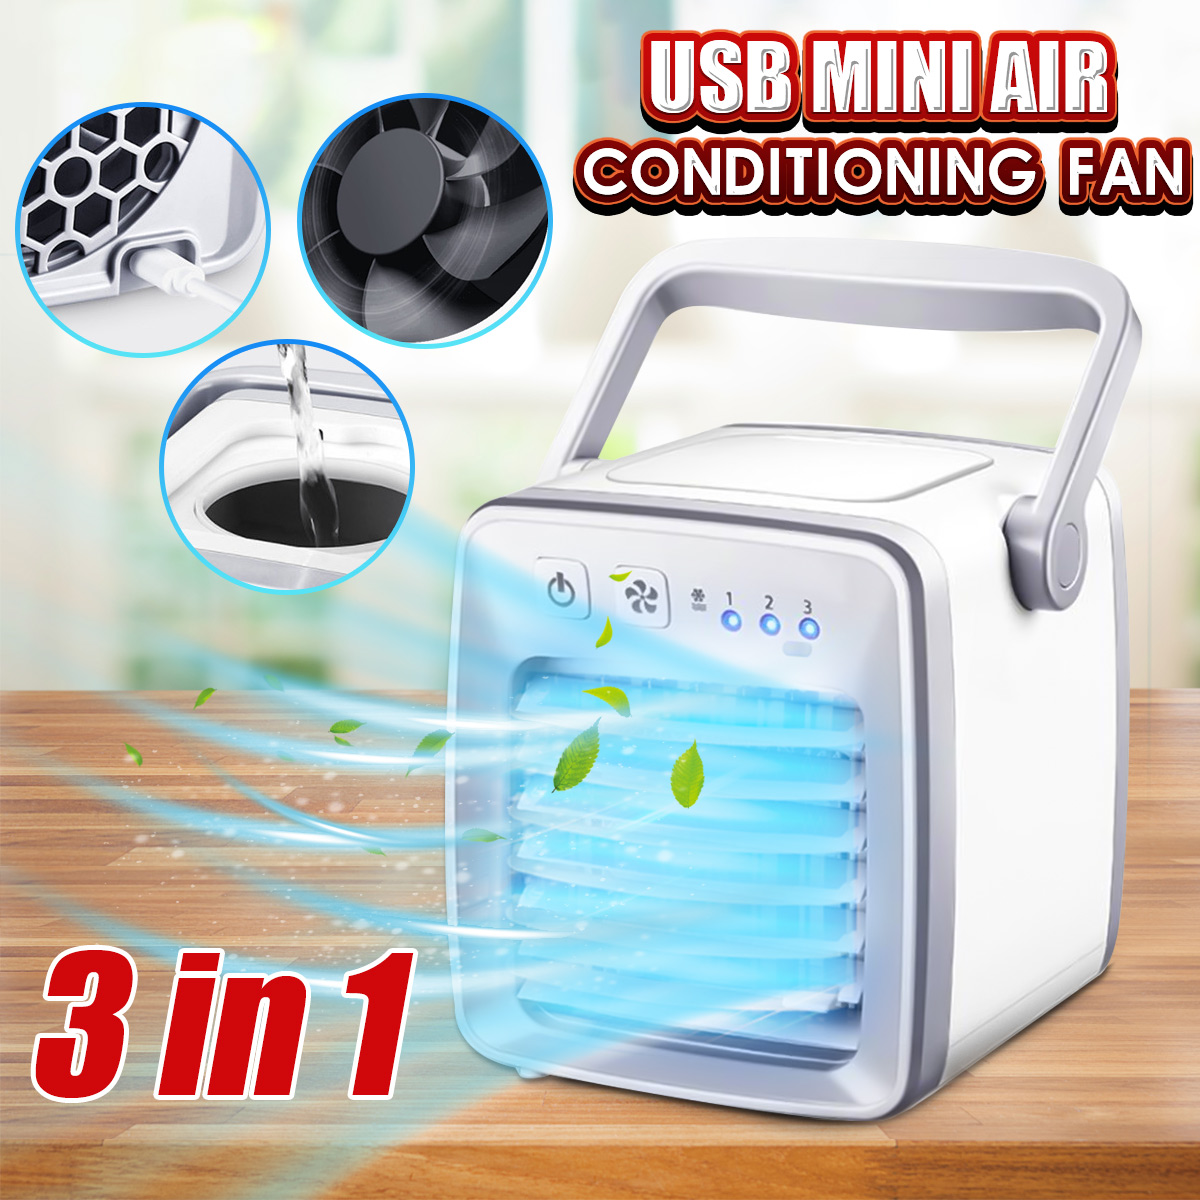 Mini USB Personal Air Conditioner Small Cooling Fan Portable Handle Desktop Quiet Cooler for Summer